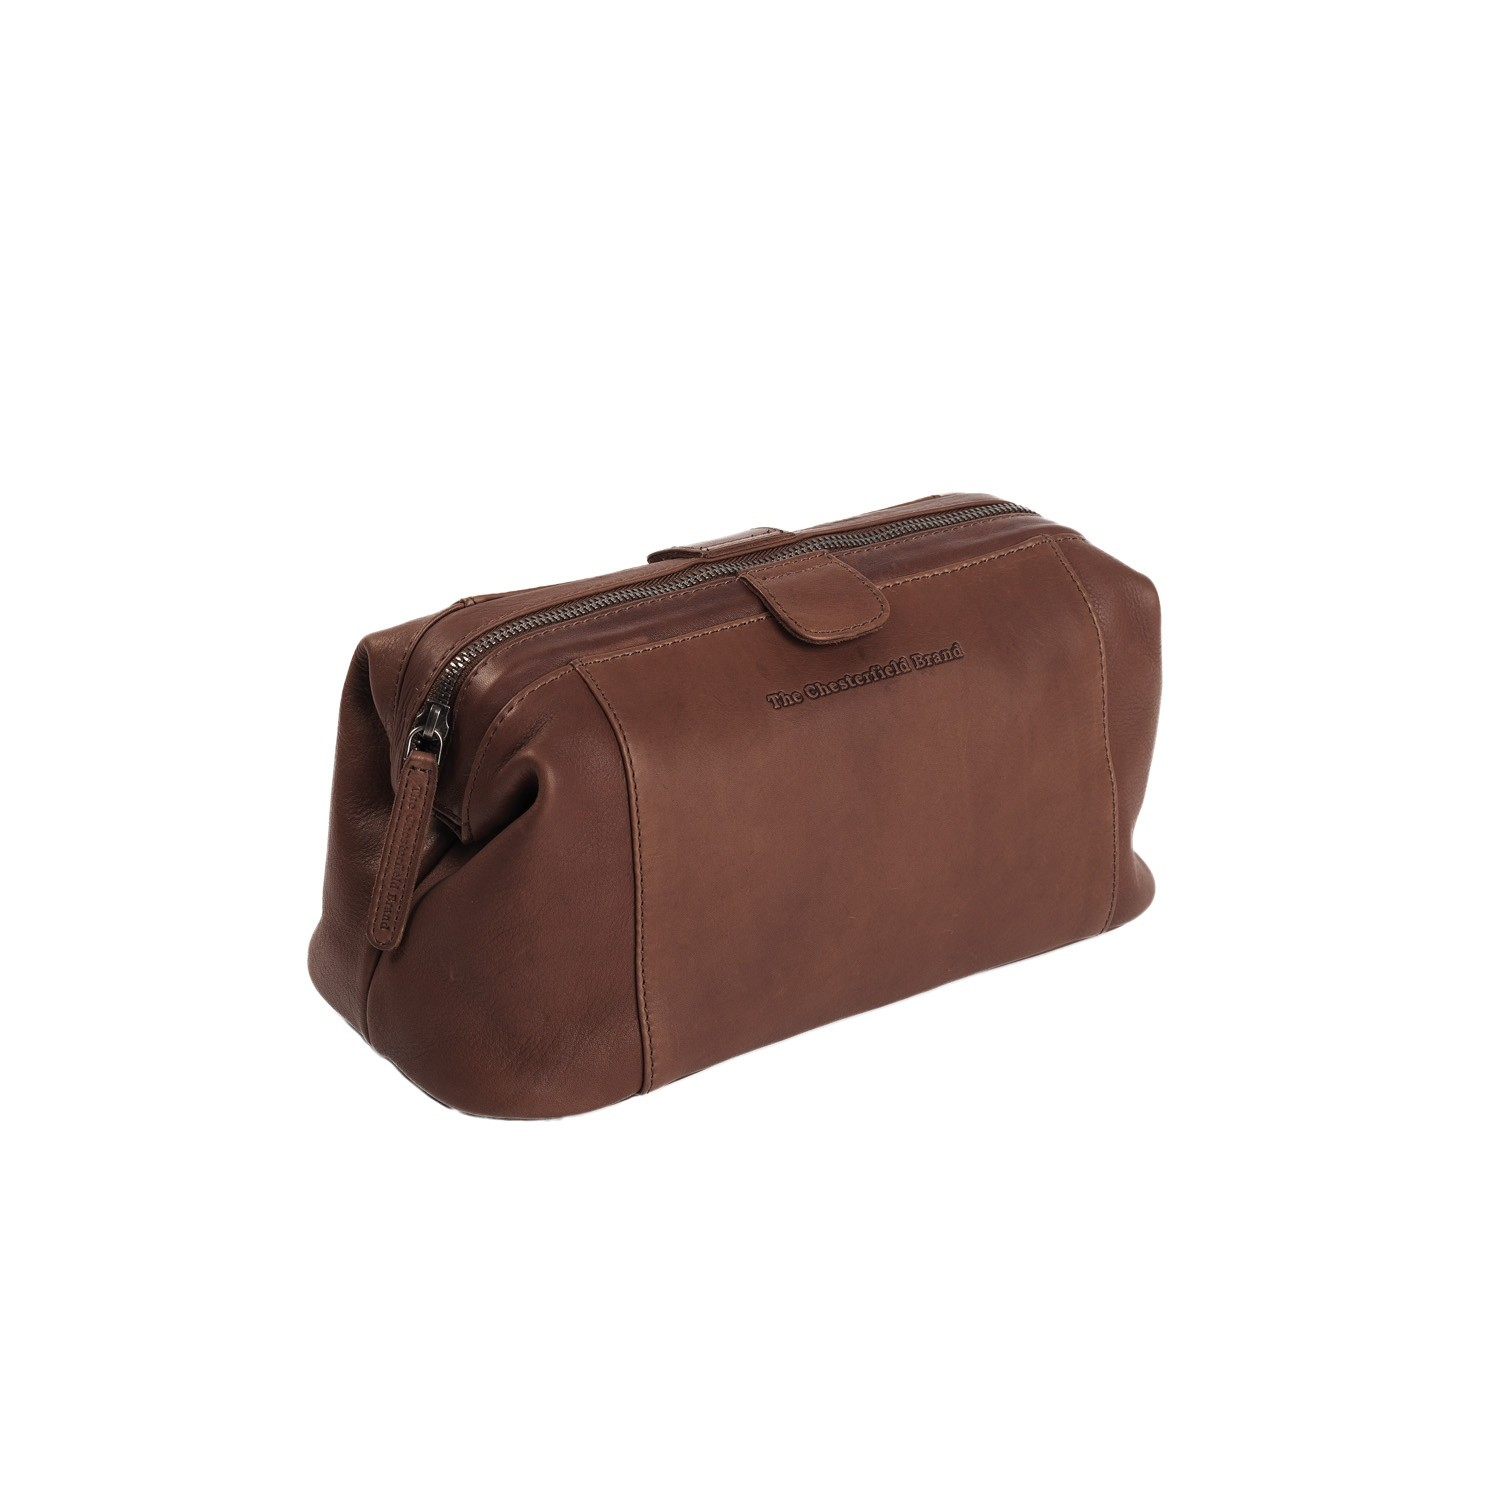 ad312f0698 Image of Leather Toiletry Bag Brown Vince